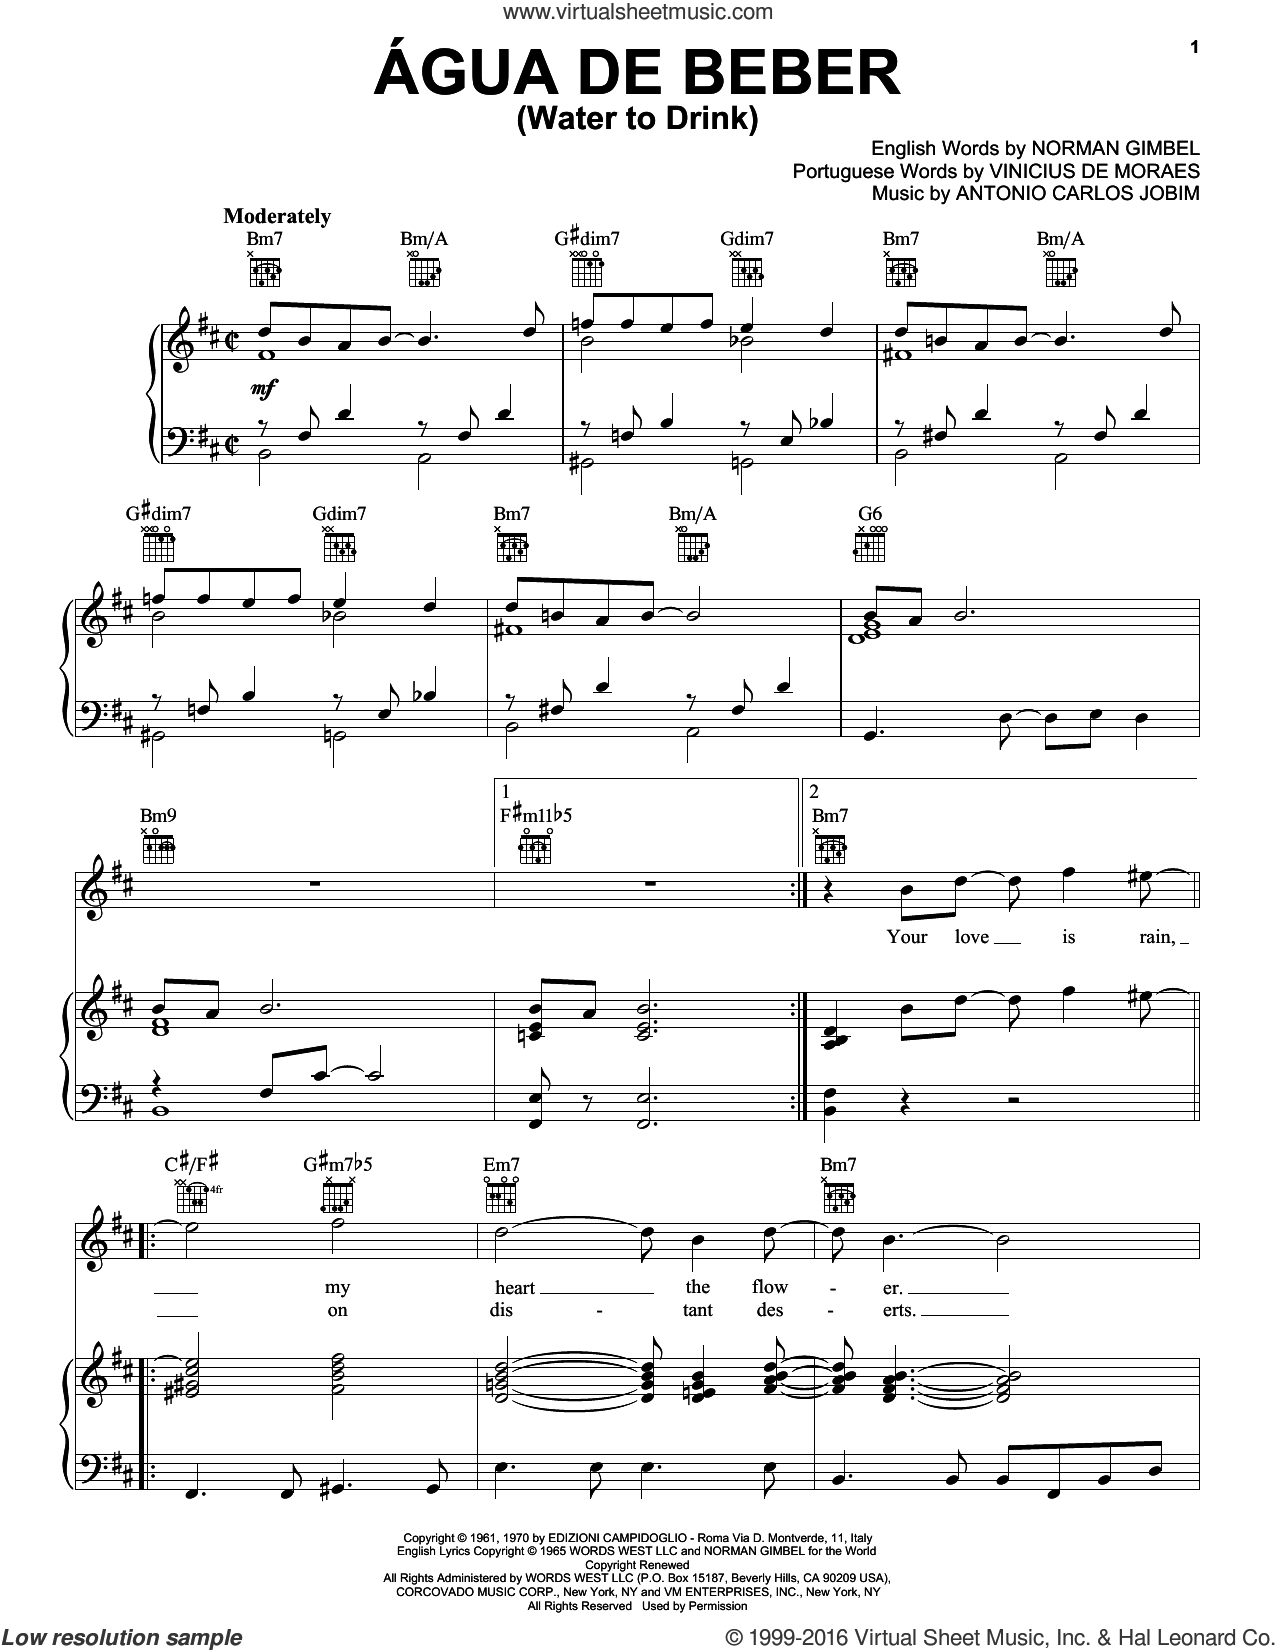 Agua De Beber (Water To Drink) sheet music for voice, piano or guitar by Antonio Carlos Jobim, Norman Gimbel and Vinicius de Moraes, intermediate skill level